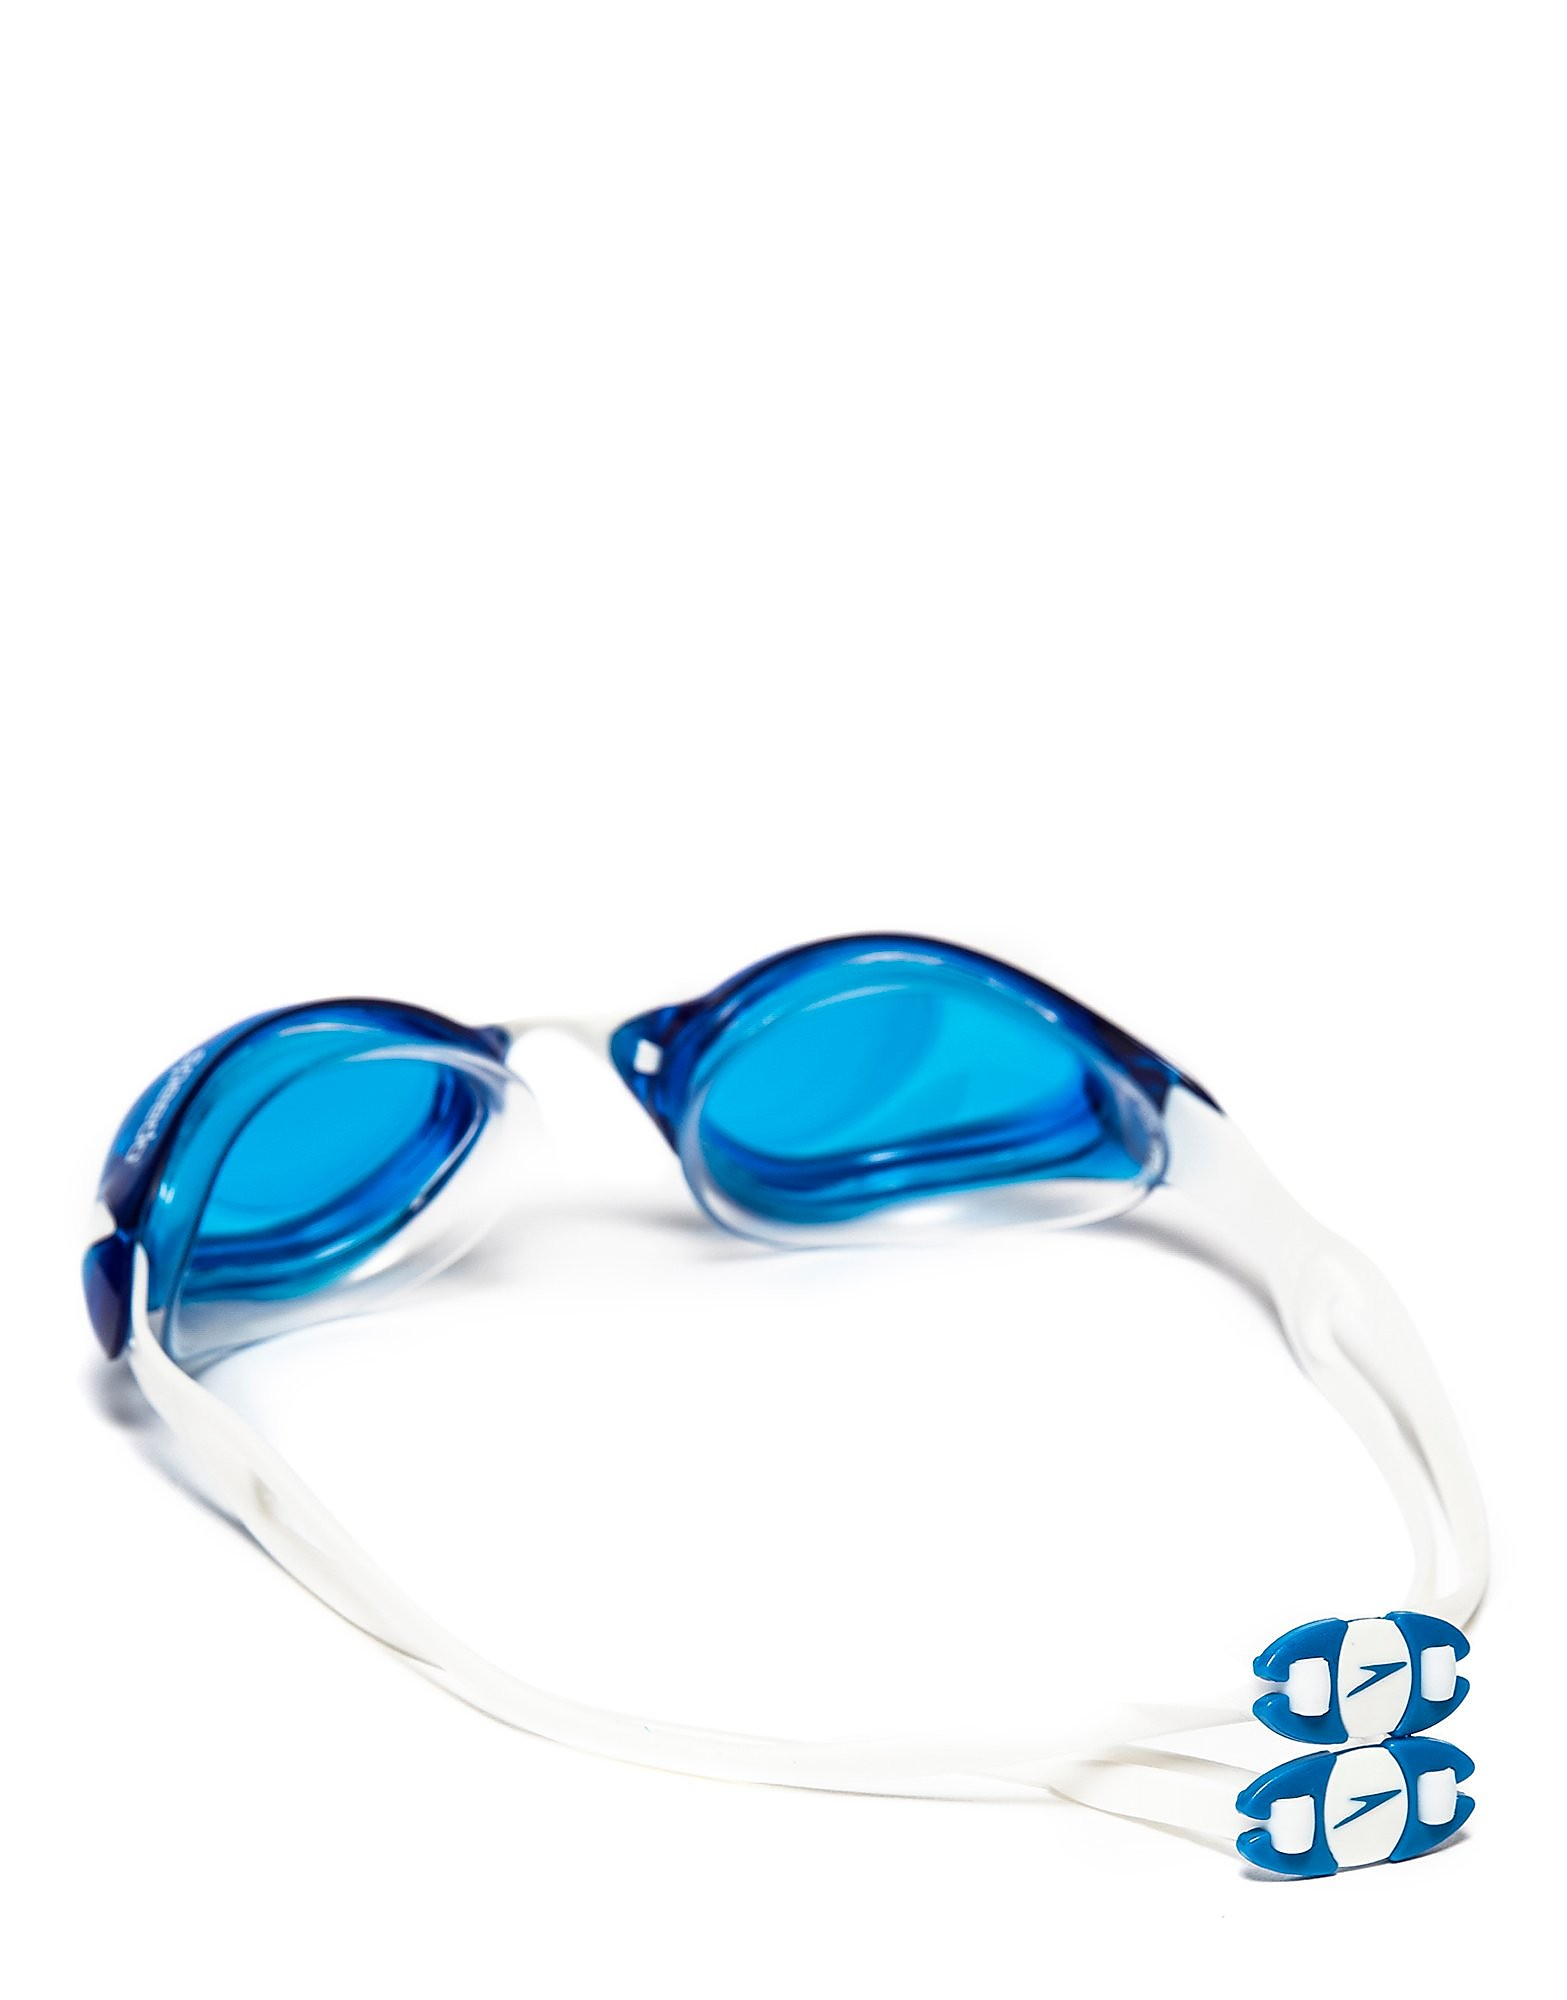 Speedo Aquapulse Goggles